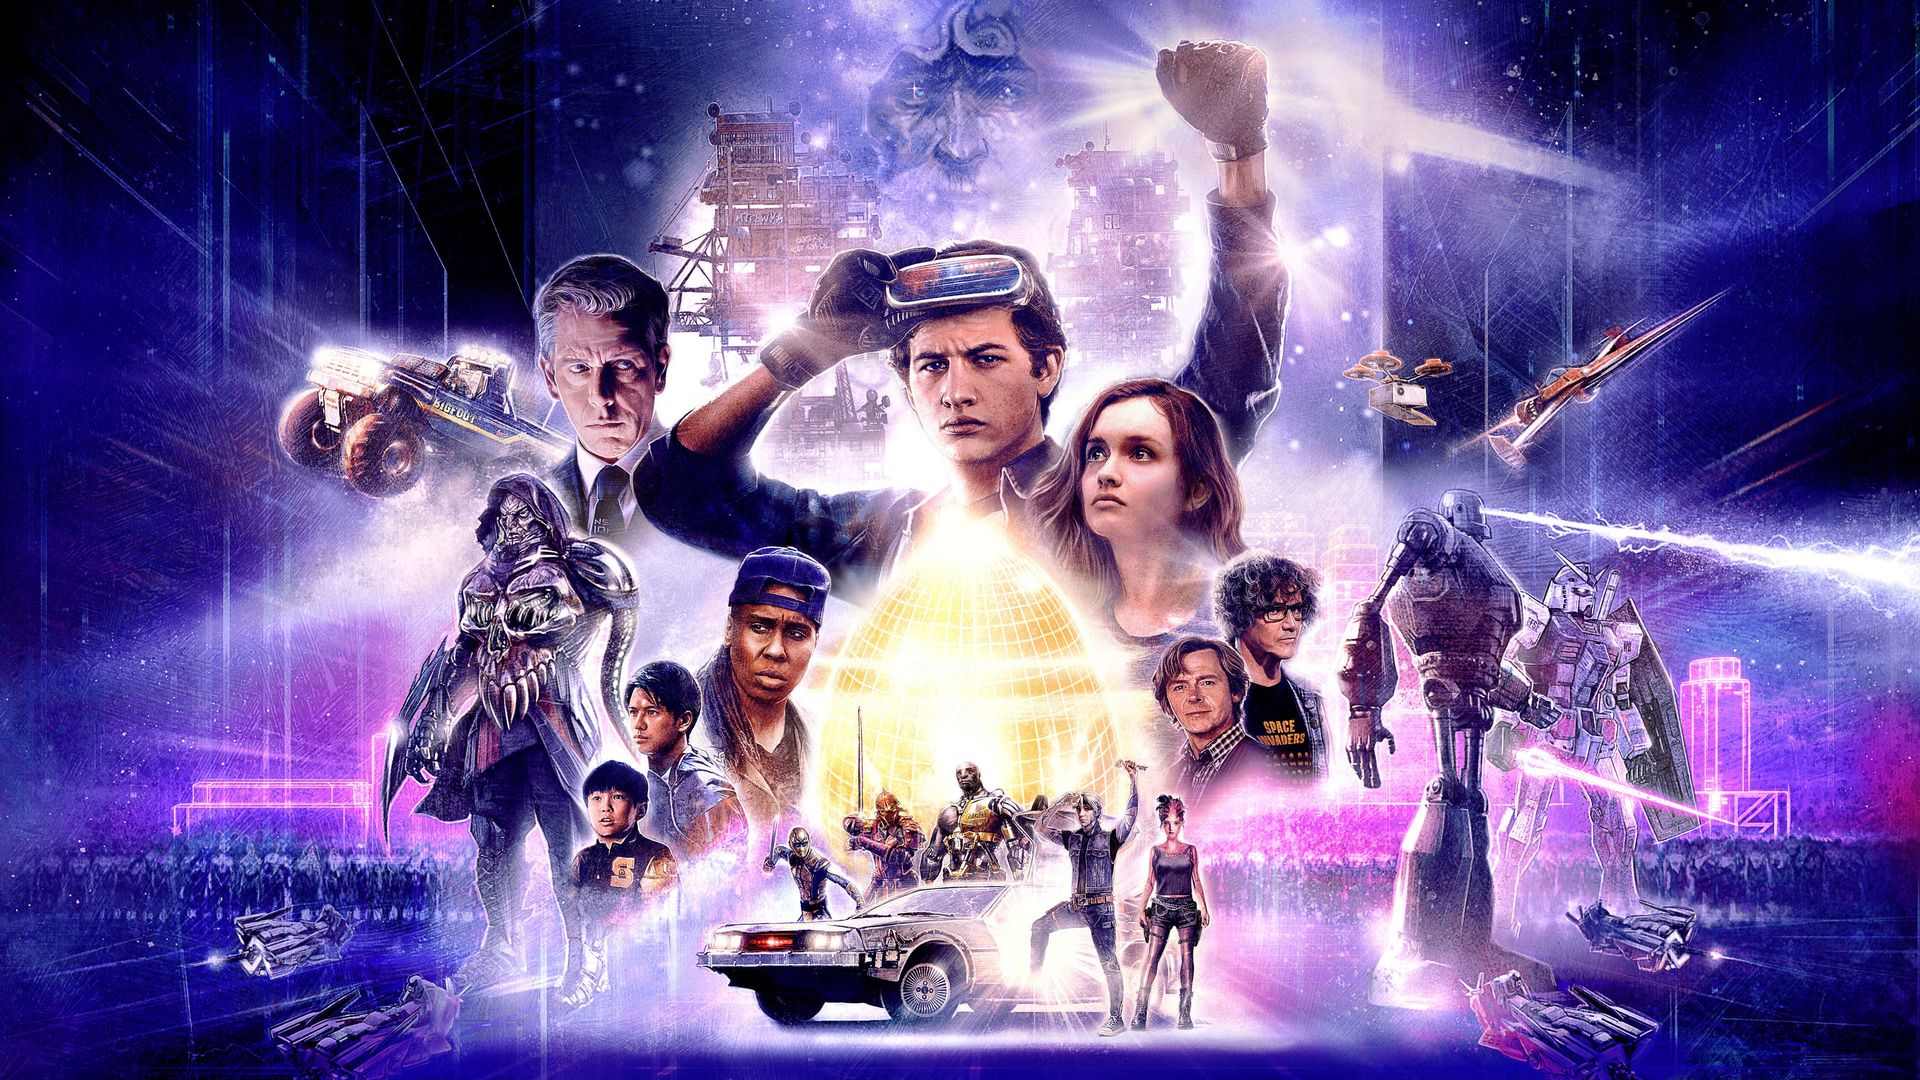 10. Ready Player One